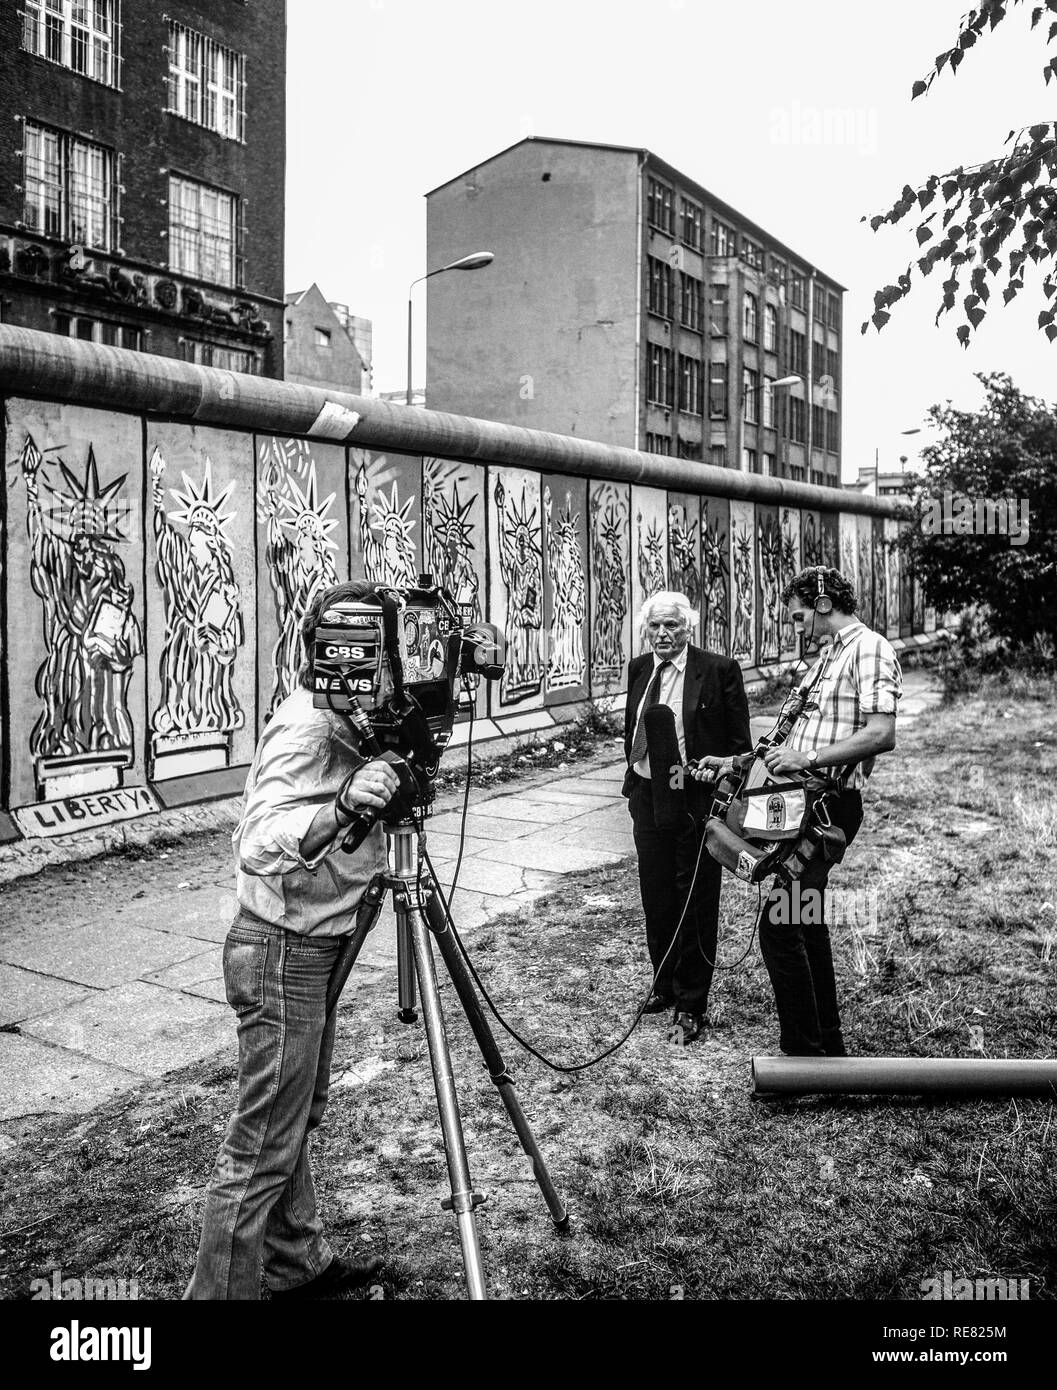 88b43d63 August 1986, CBS TV crew conducting an interview in front of Berlin Wall  decorated with